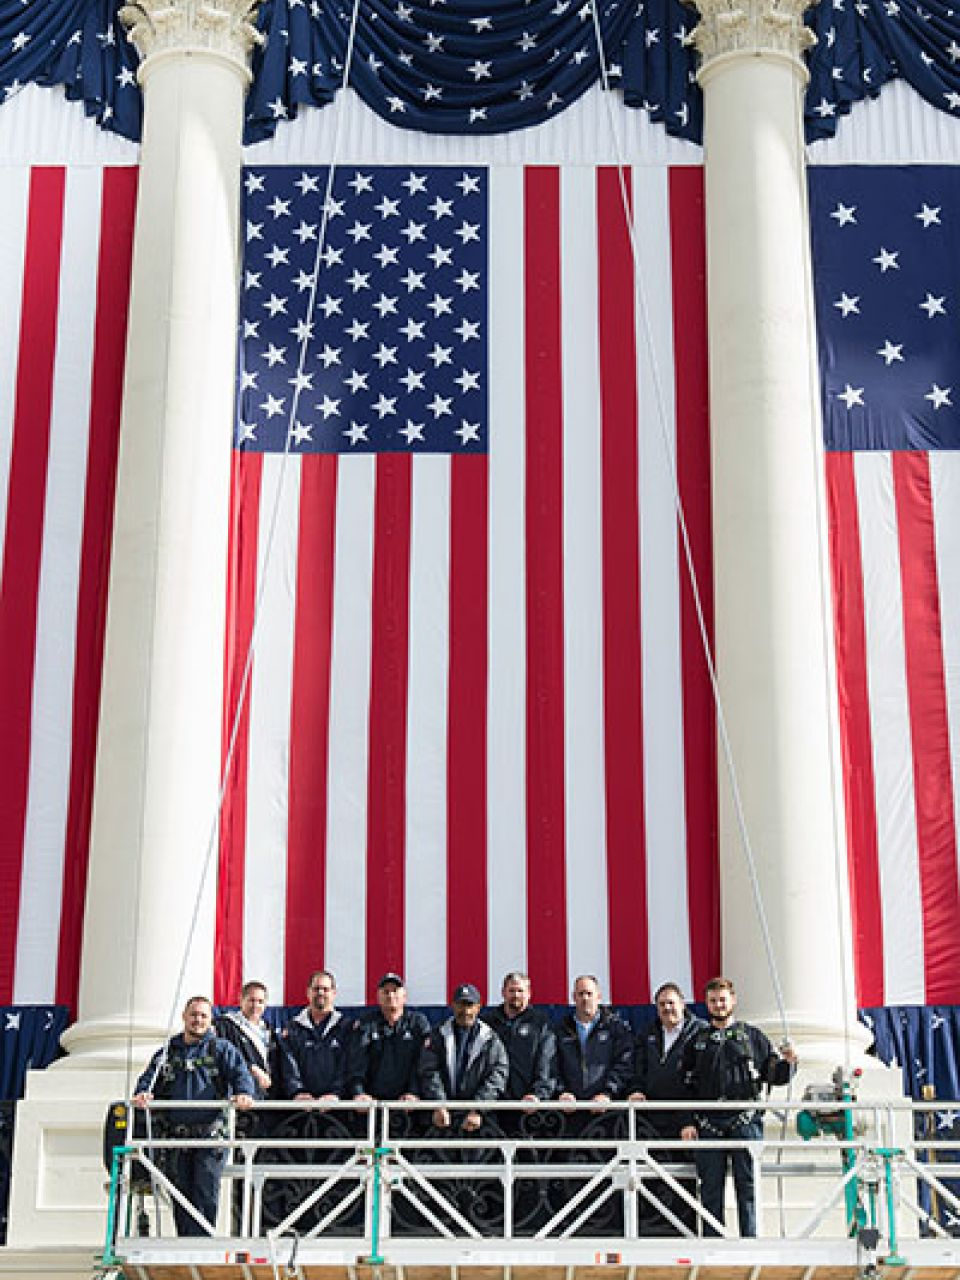 Employees of the Architect of the Capitol pause to stand in front of a flag during inauguration set up.